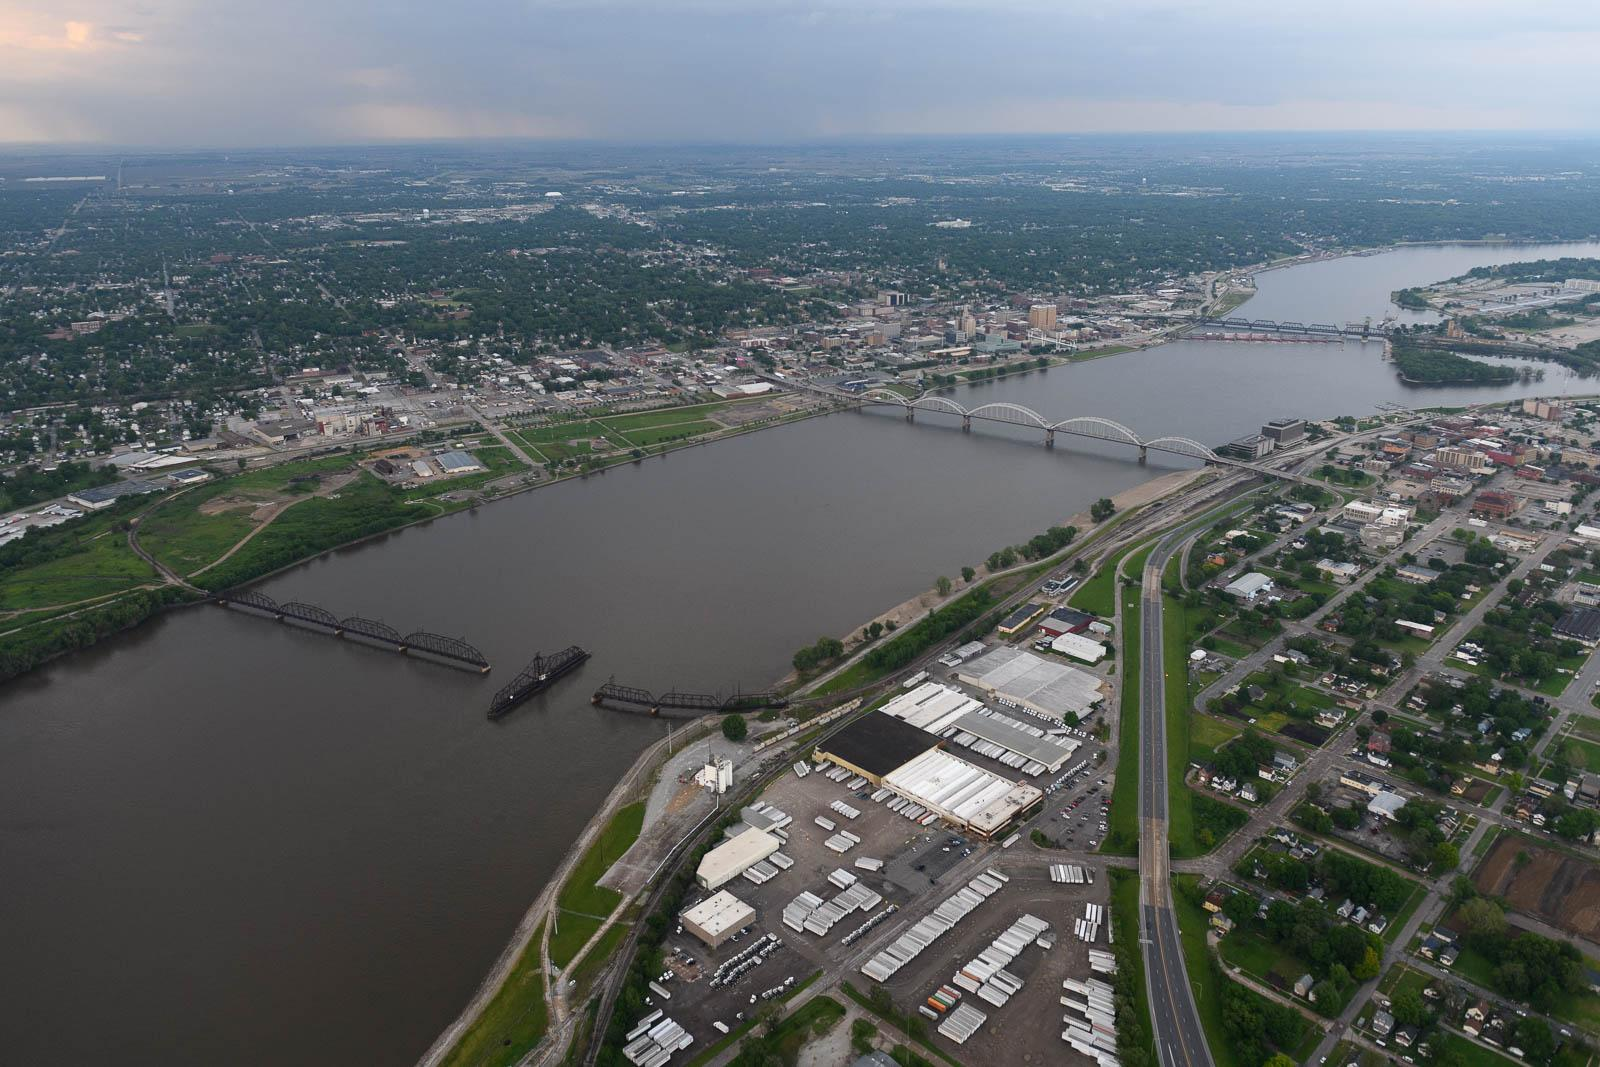 Crossing the Mississippi near Quad Cities